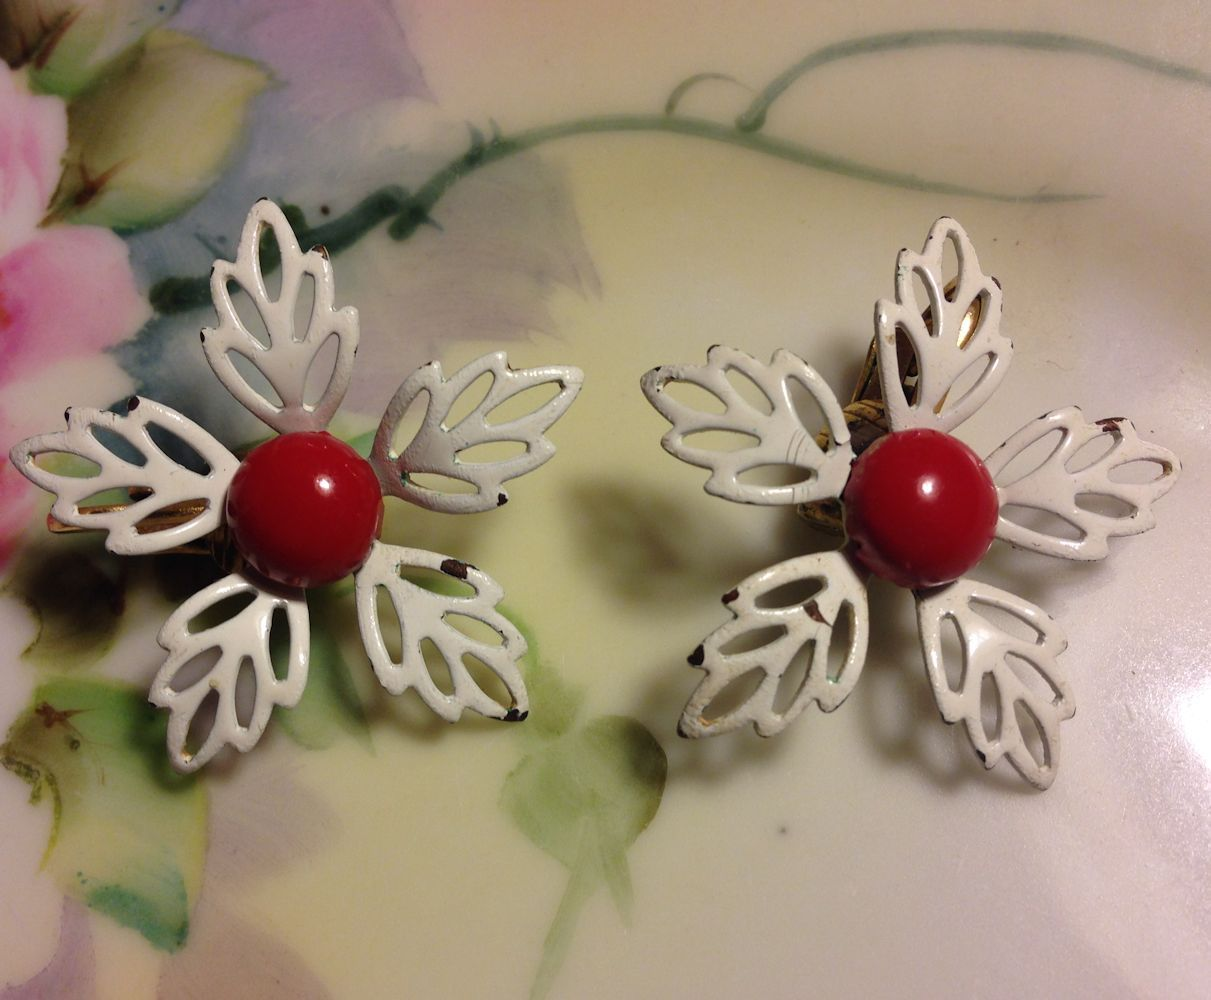 VTG 50s/60s White Filigree Petaled Enamel Flowers/Red Centers Clip On Earrings image 3